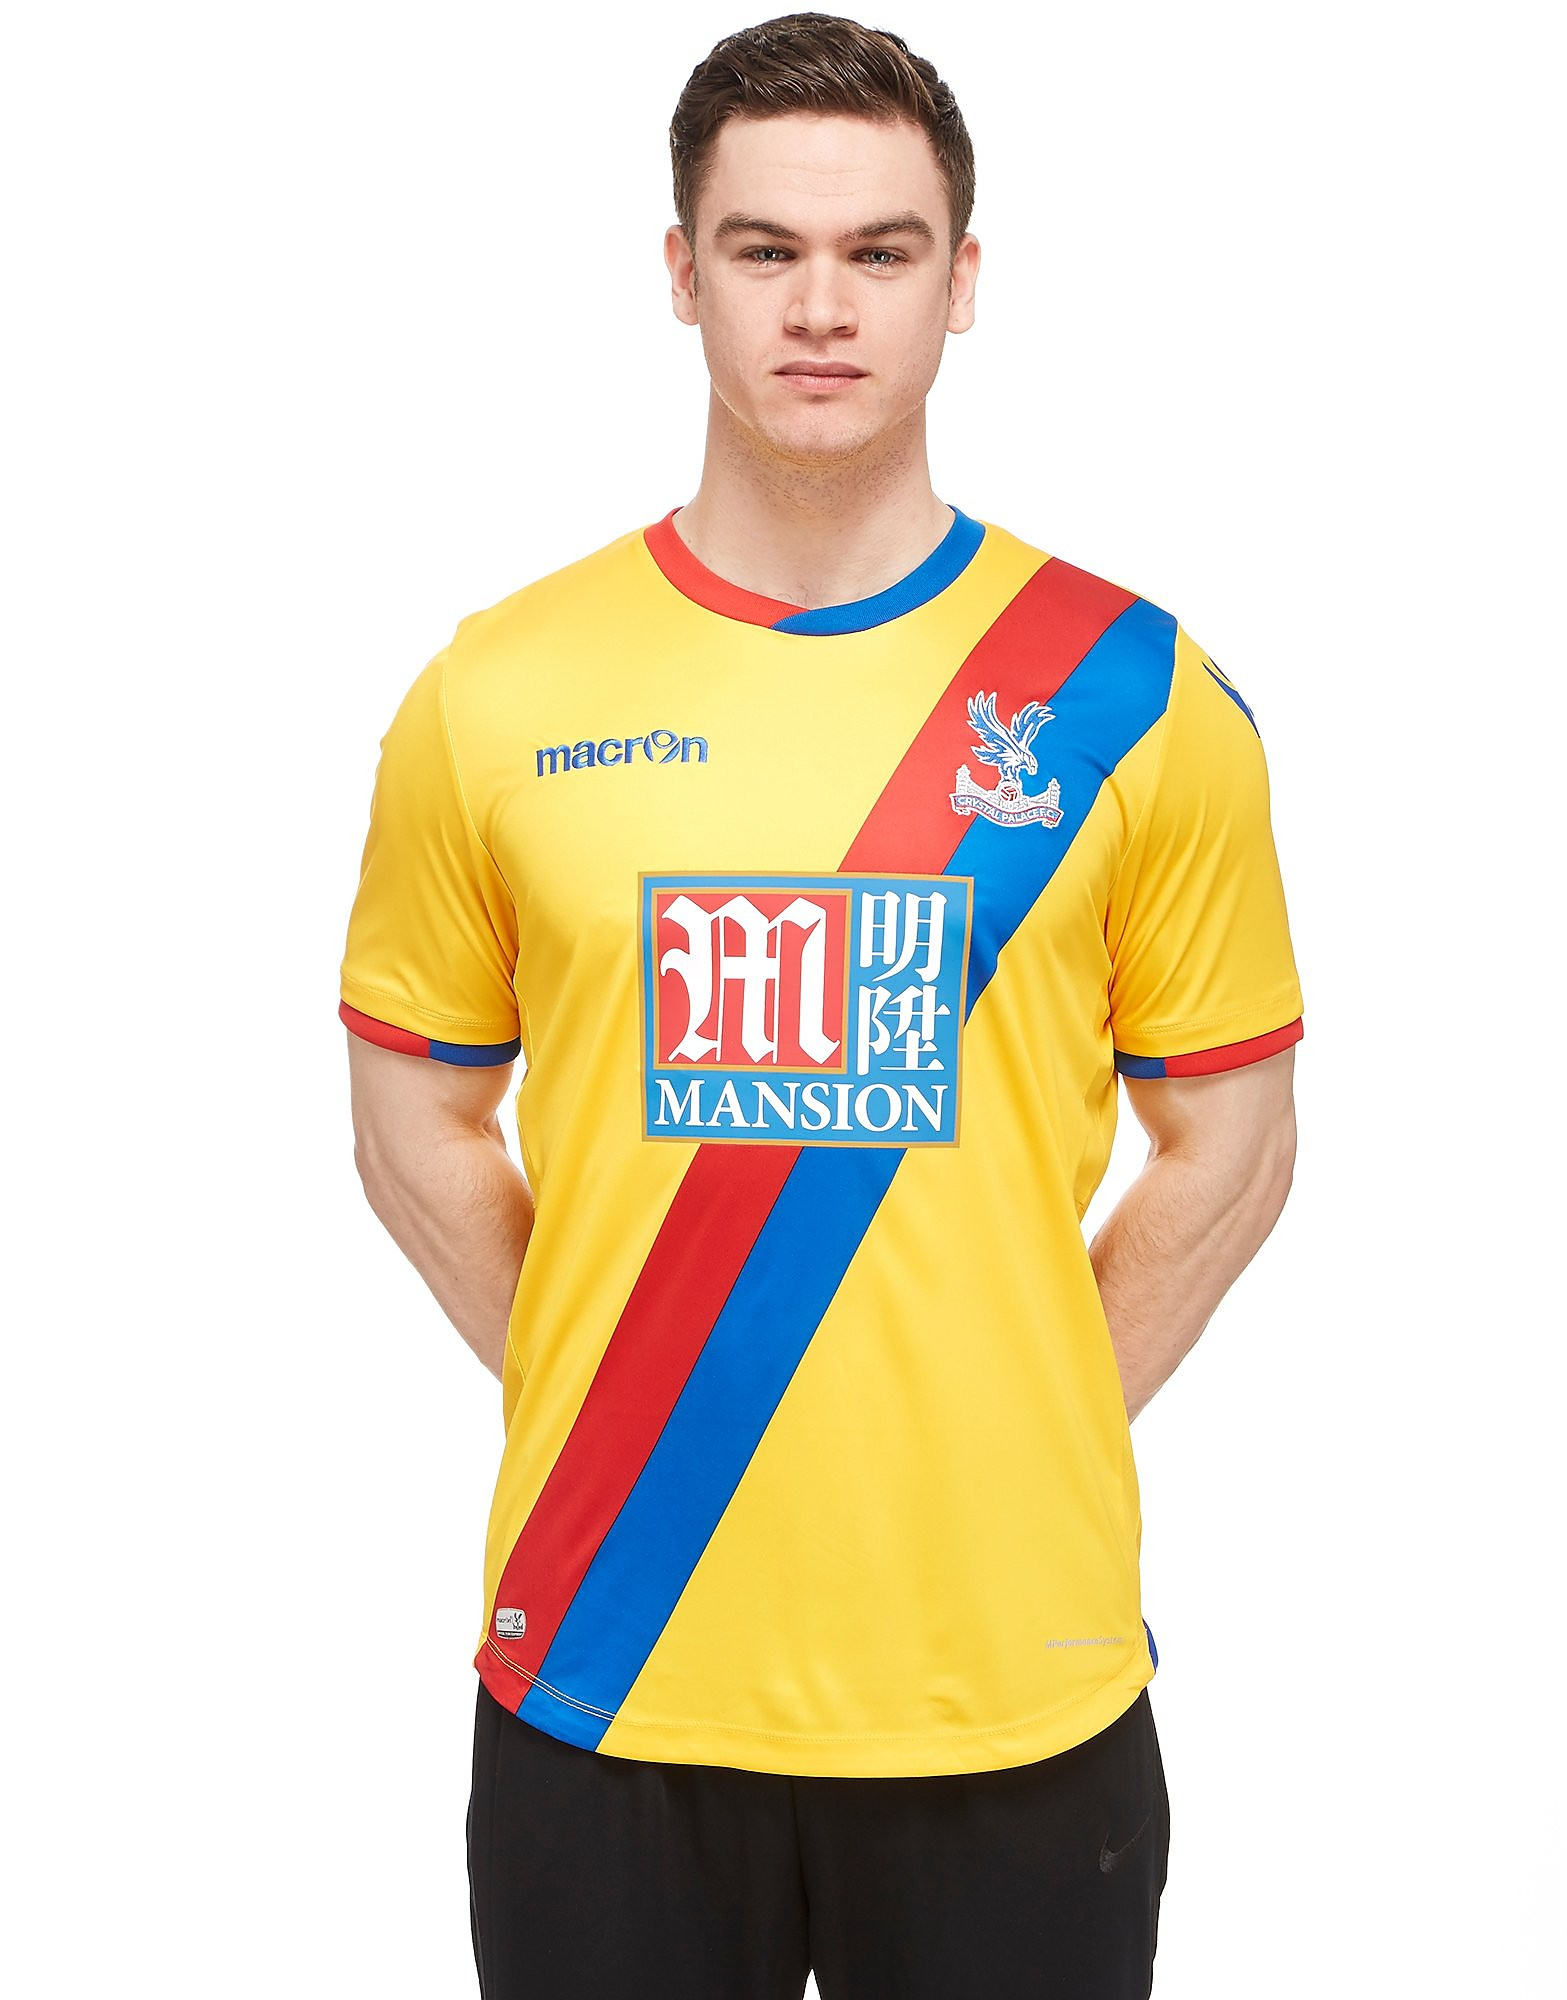 Macron Crystal Palace Away 2016/17 Shirt